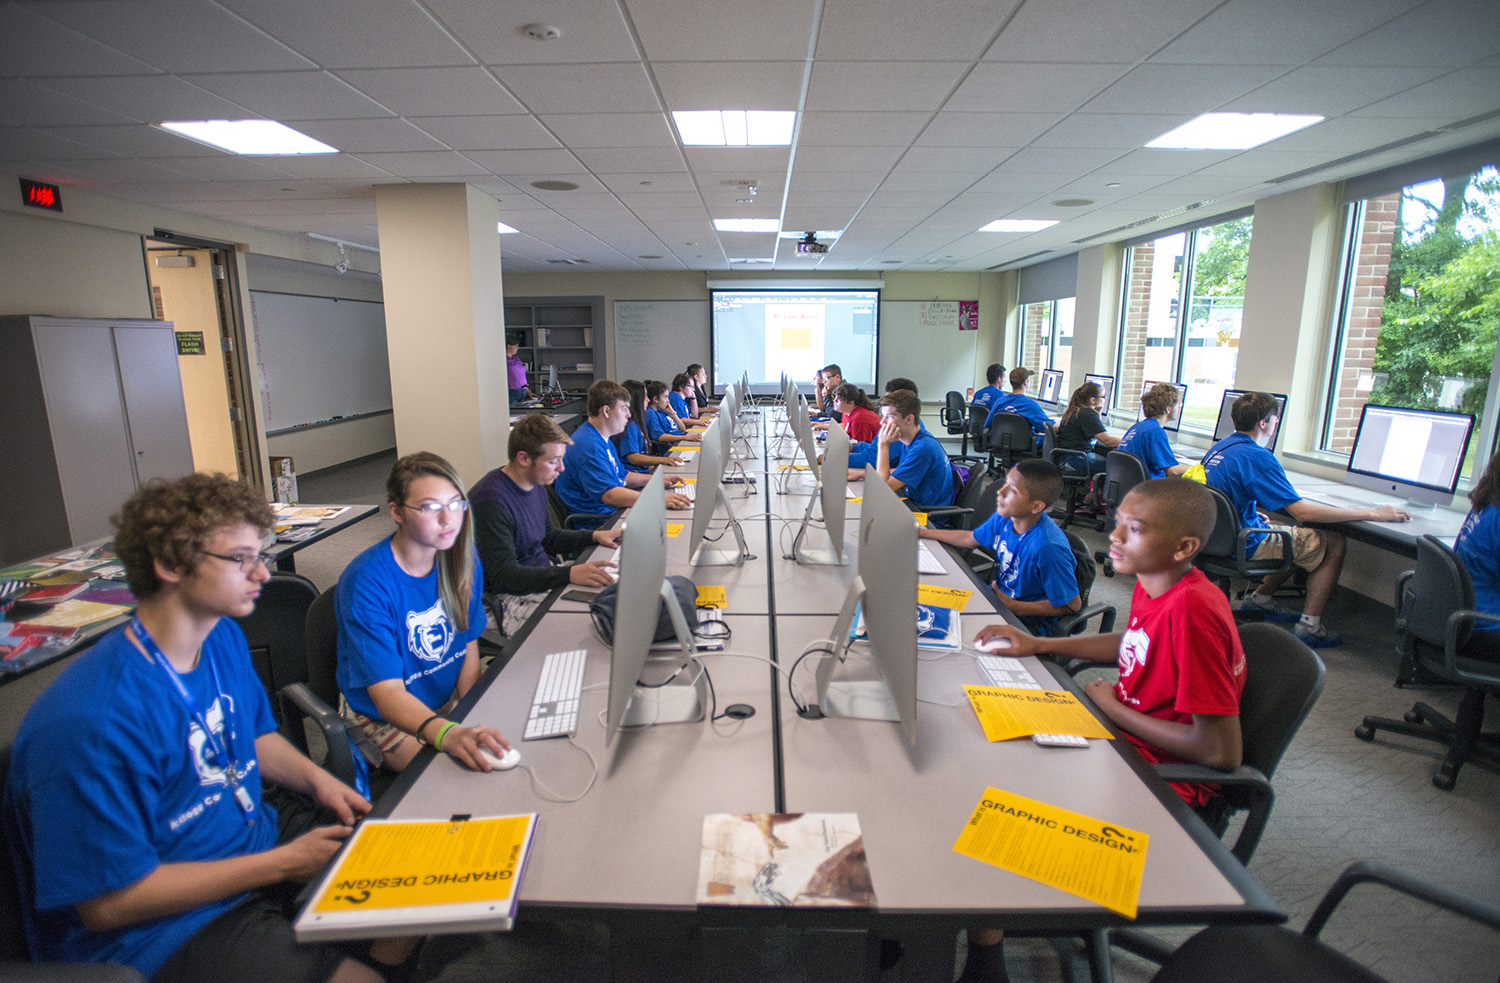 Youth summer campers work on computers during a summer camp at KCC.